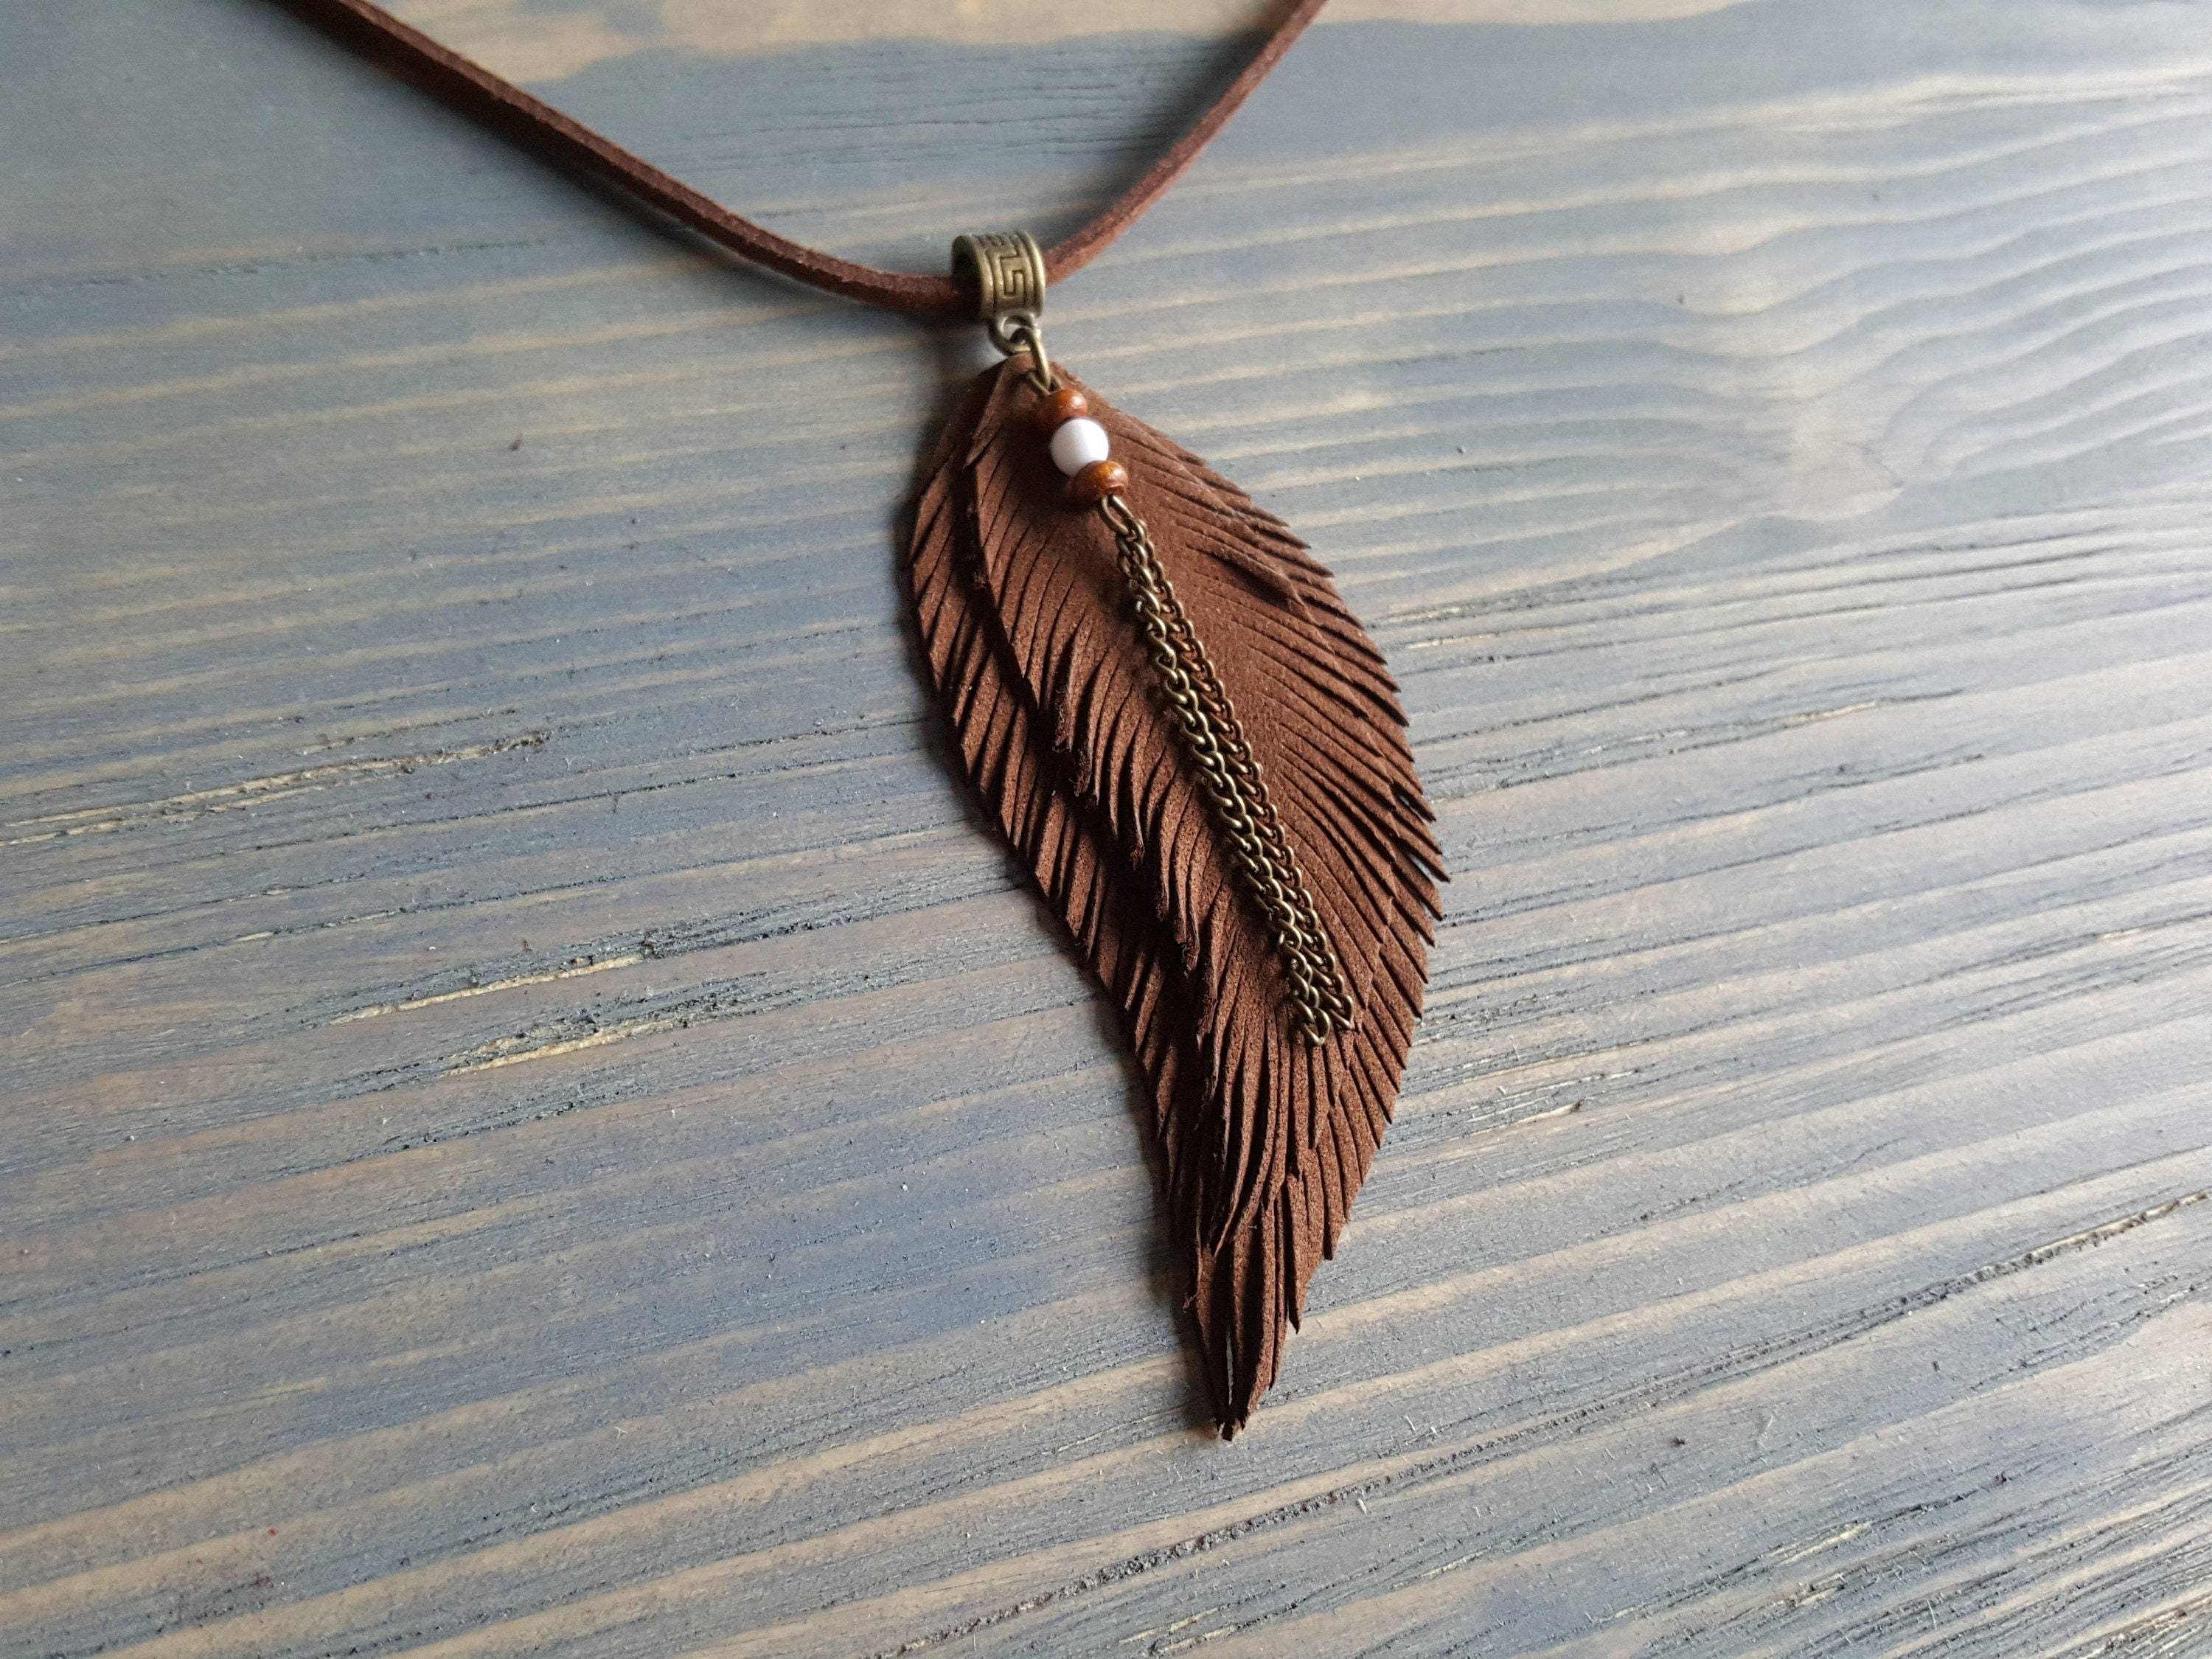 3a1ac7ad6e2af ... feather necklace Hippie necklace Leather choker Boho chic. gallery  photo gallery photo gallery photo gallery photo gallery photo ...